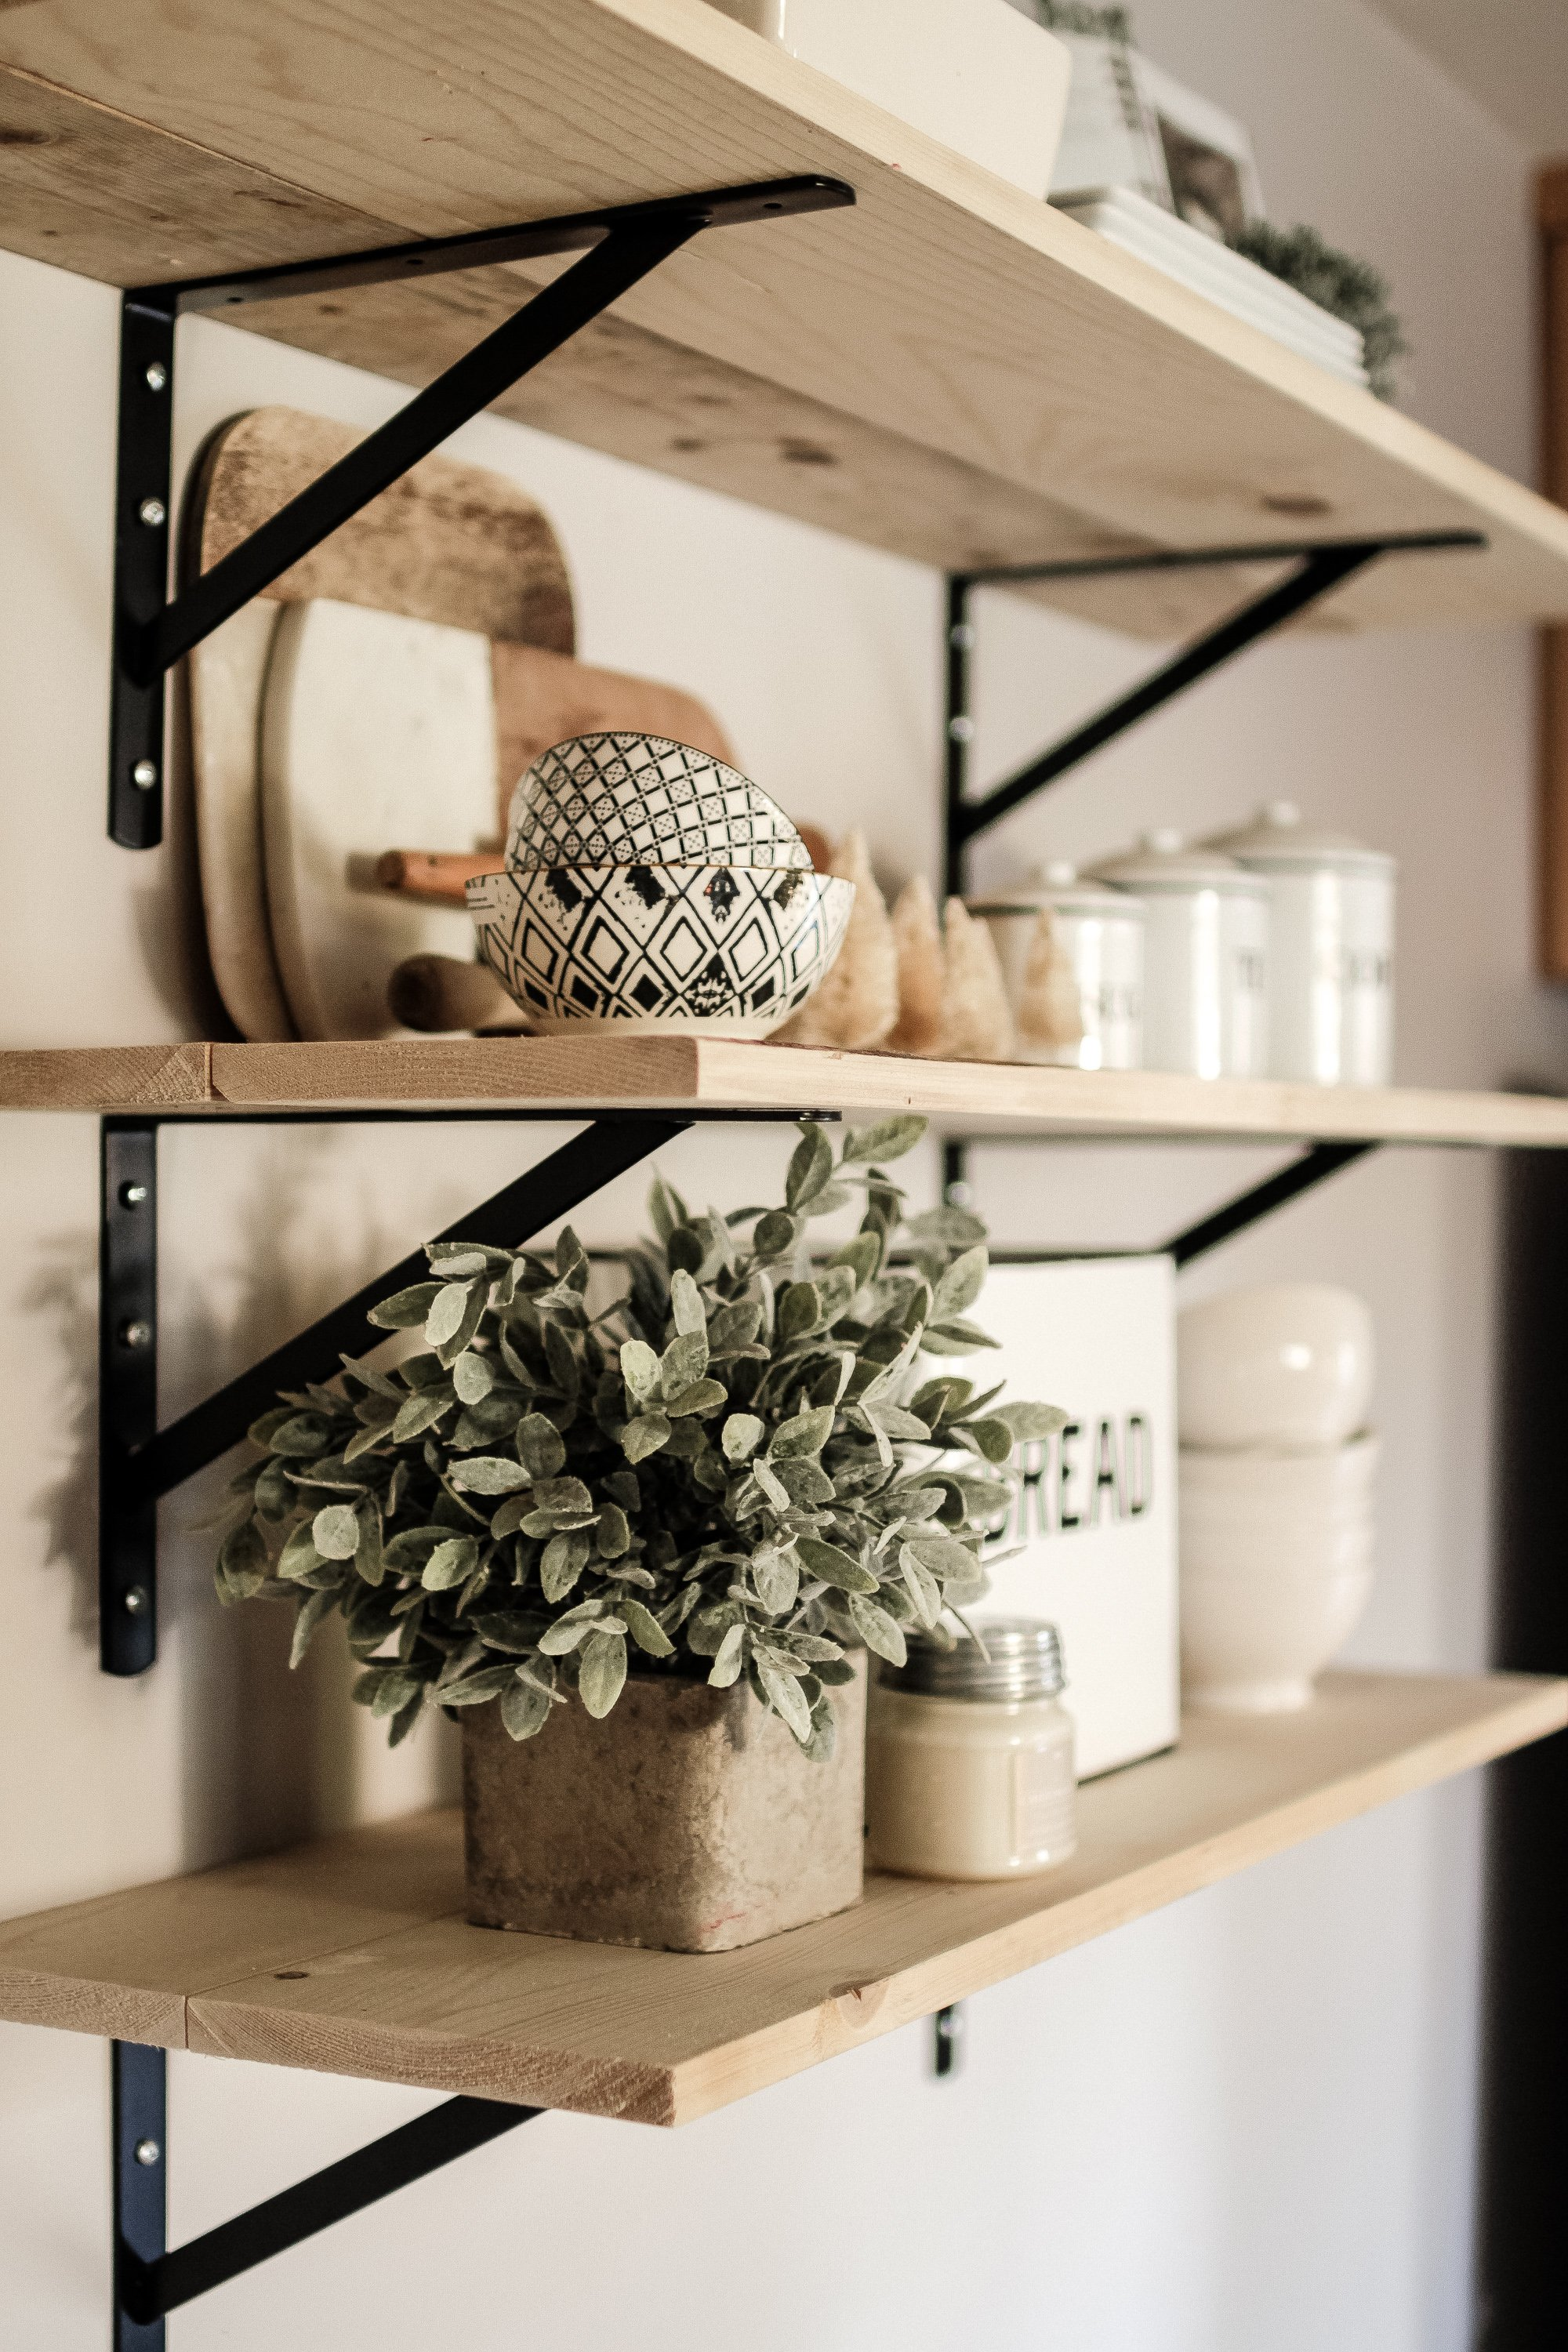 How To Decorate A Shelf. Our Modern Farmhouse Shelving in our Kitchen and how I styled it with greenery, cutting boards, dishes and canisters.